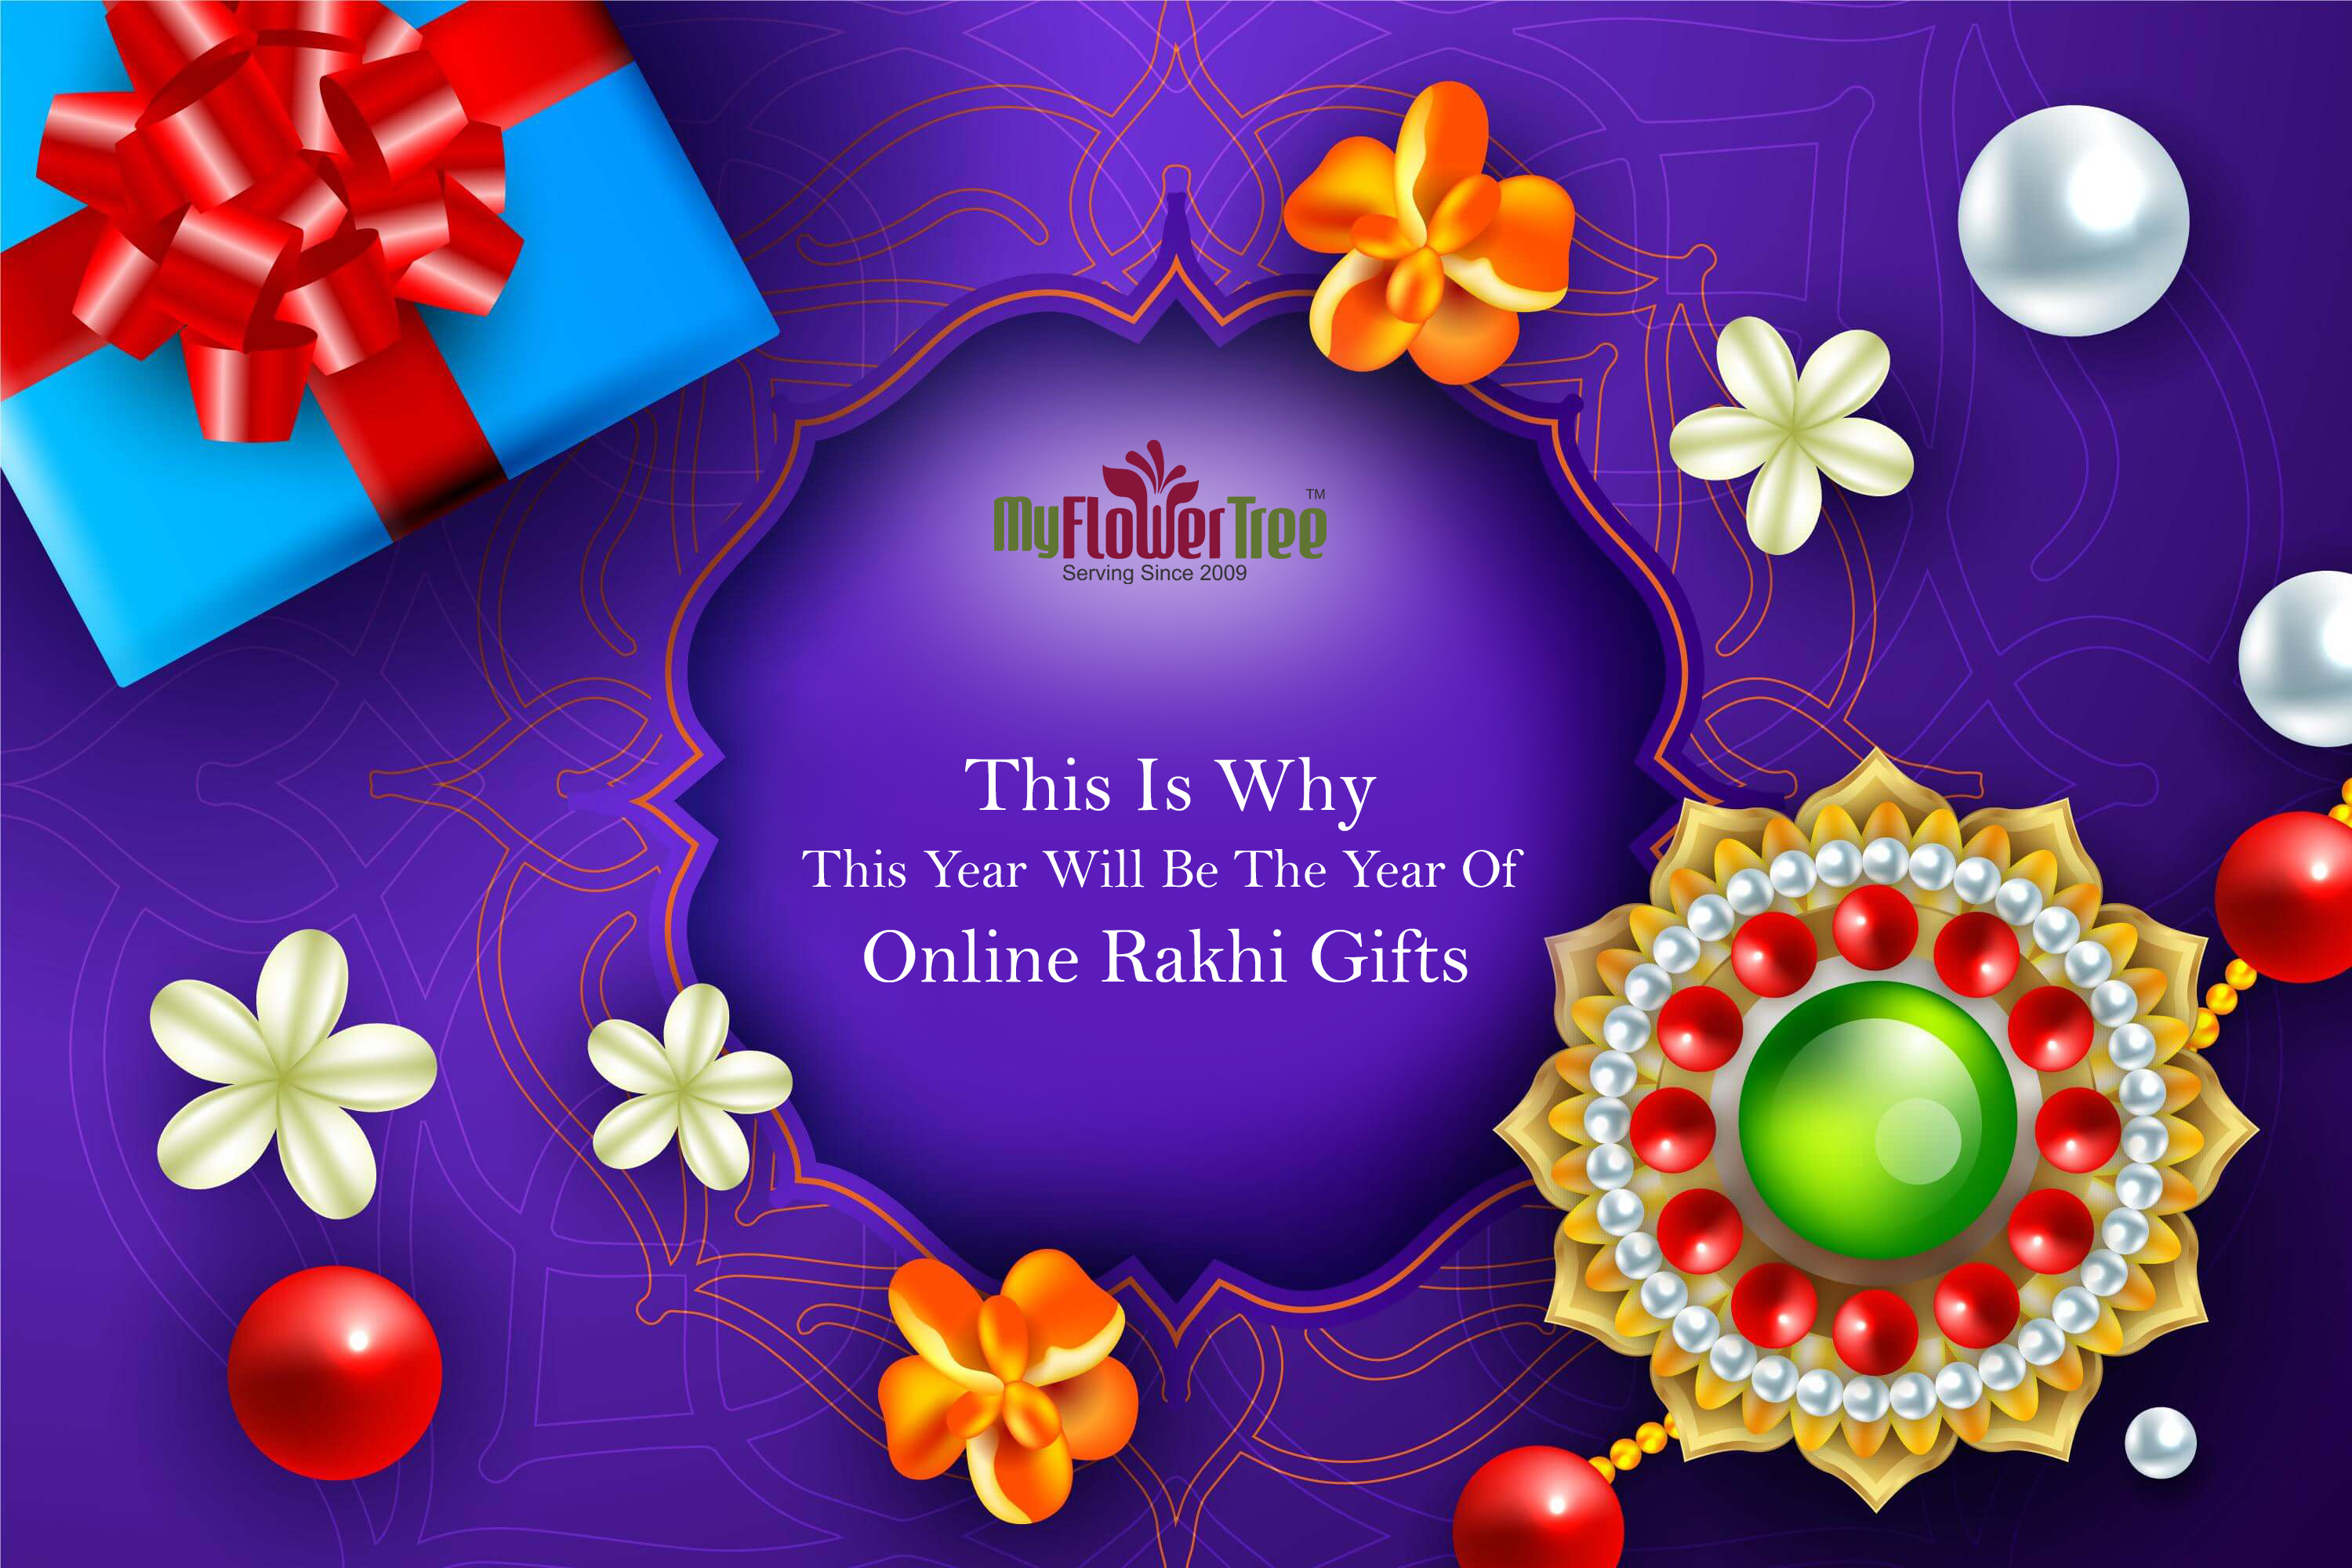 This is why this year will be the year of online rakhi gifts